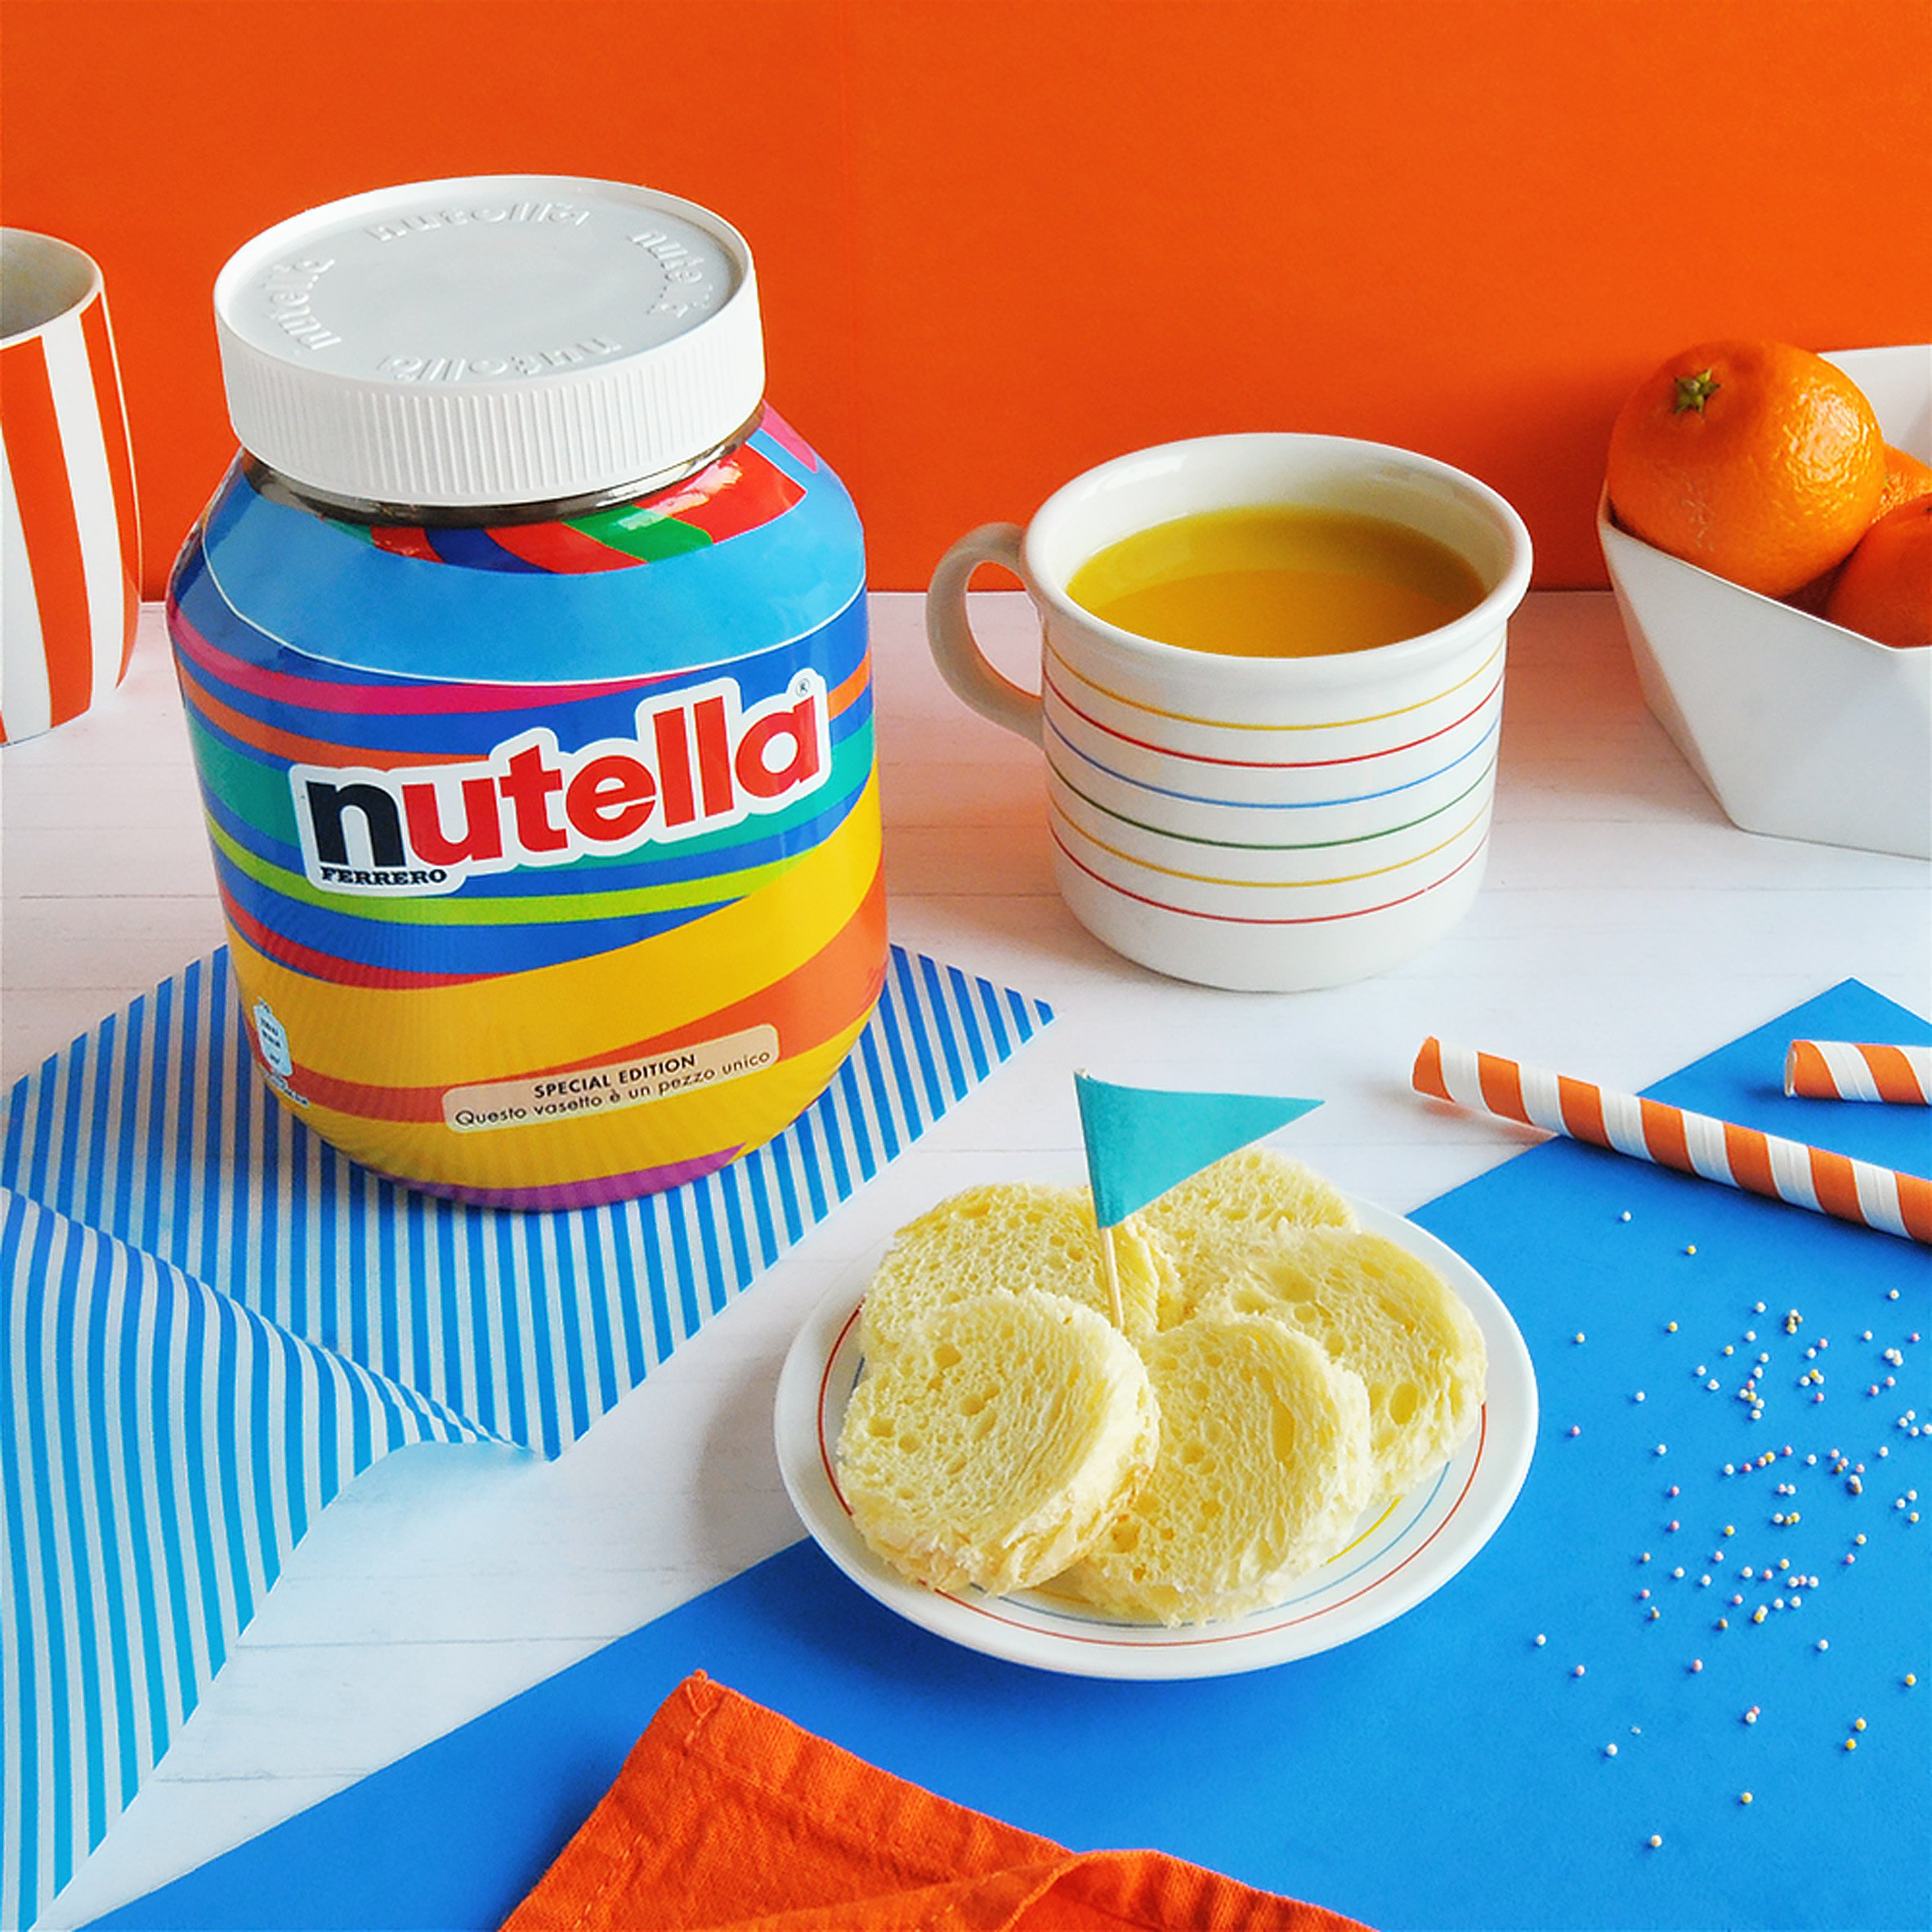 nutella-unica-packaging-design-products-_dezeen_2364_col_3